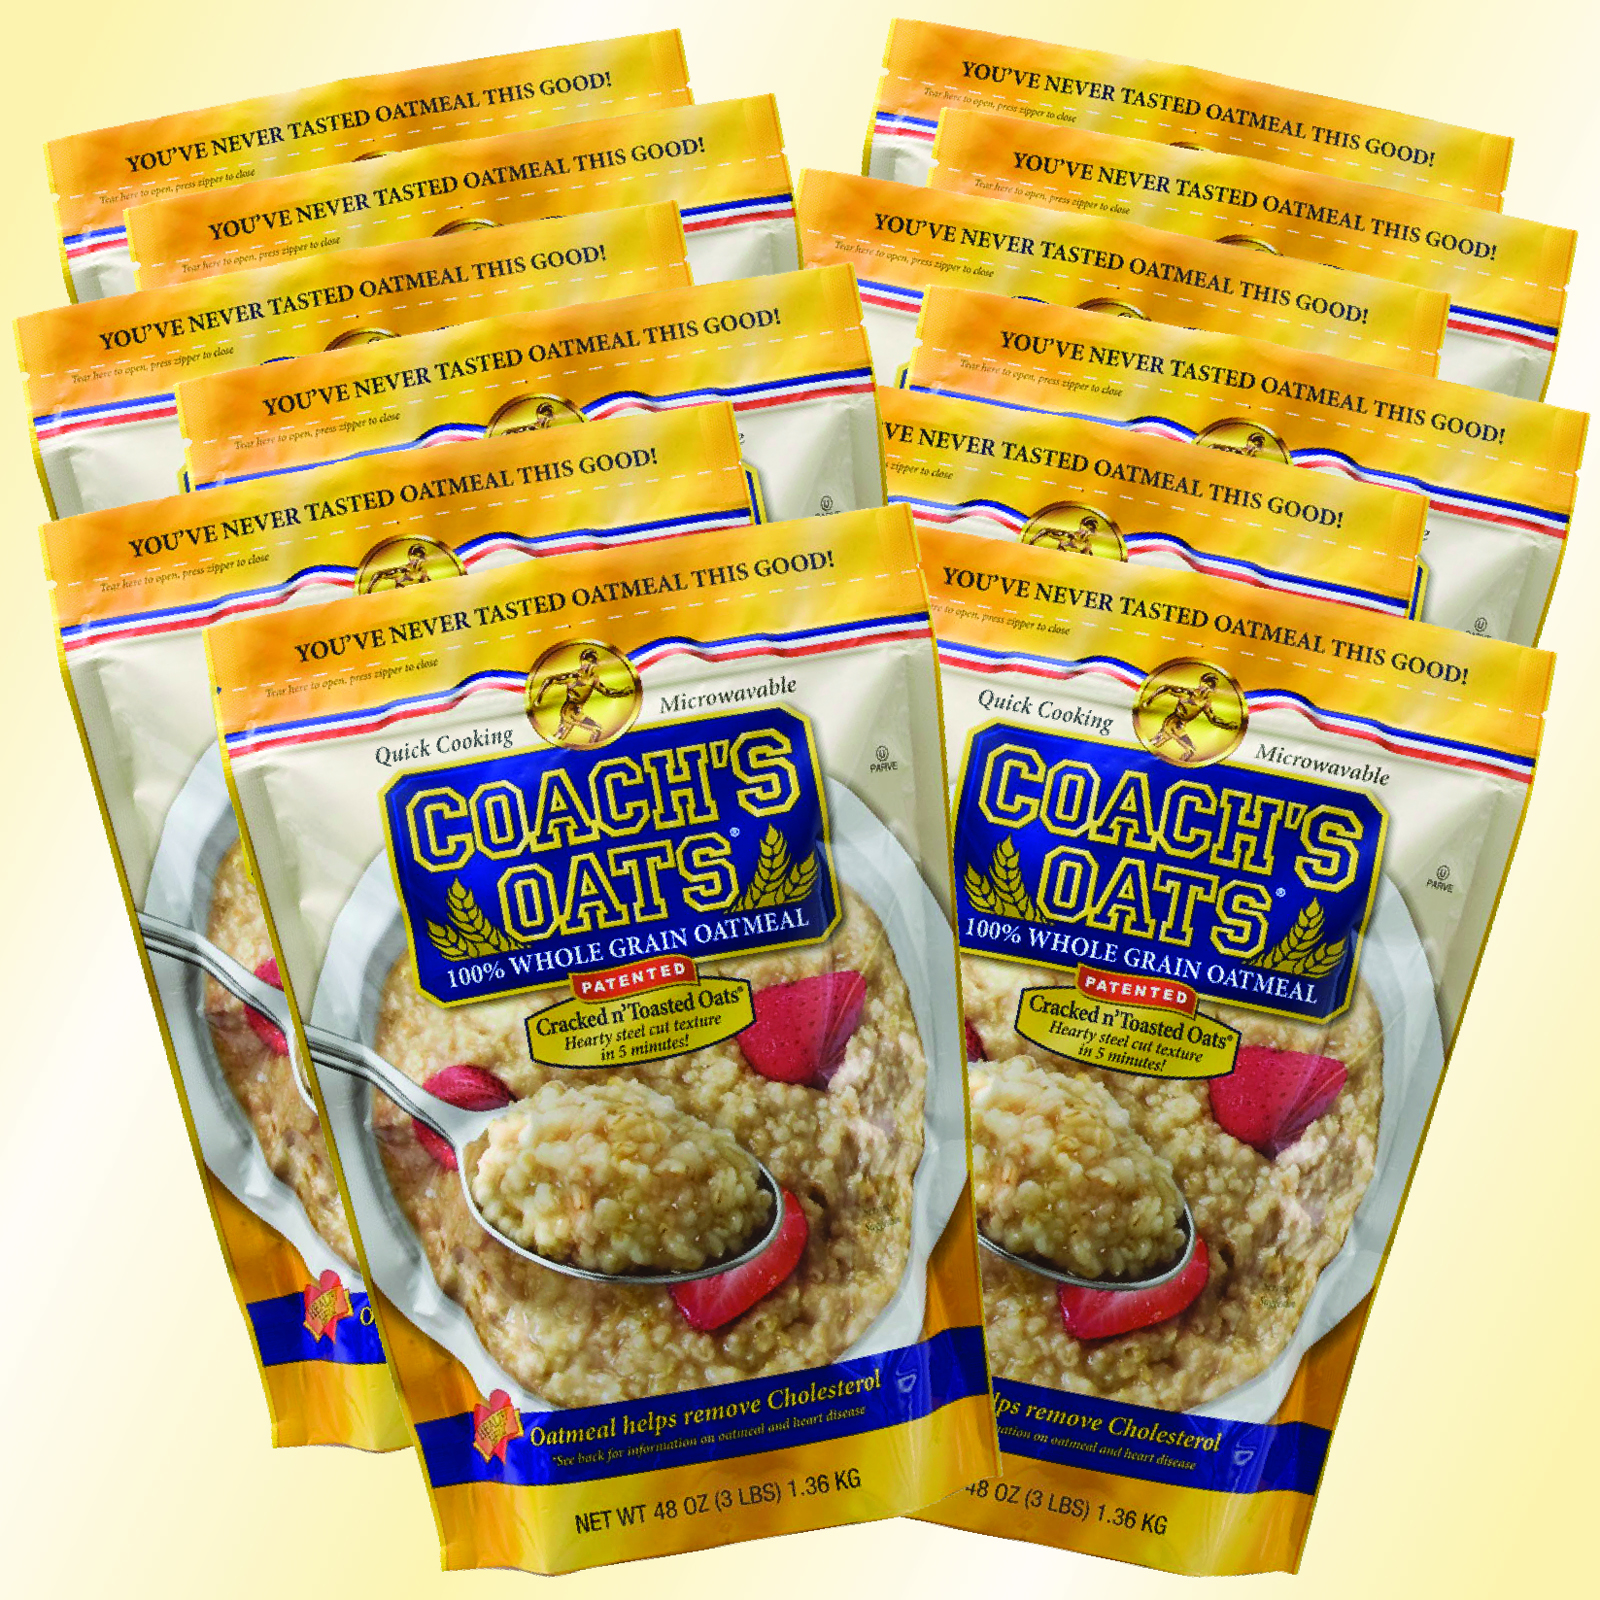 12 Bags of Coach's Oats